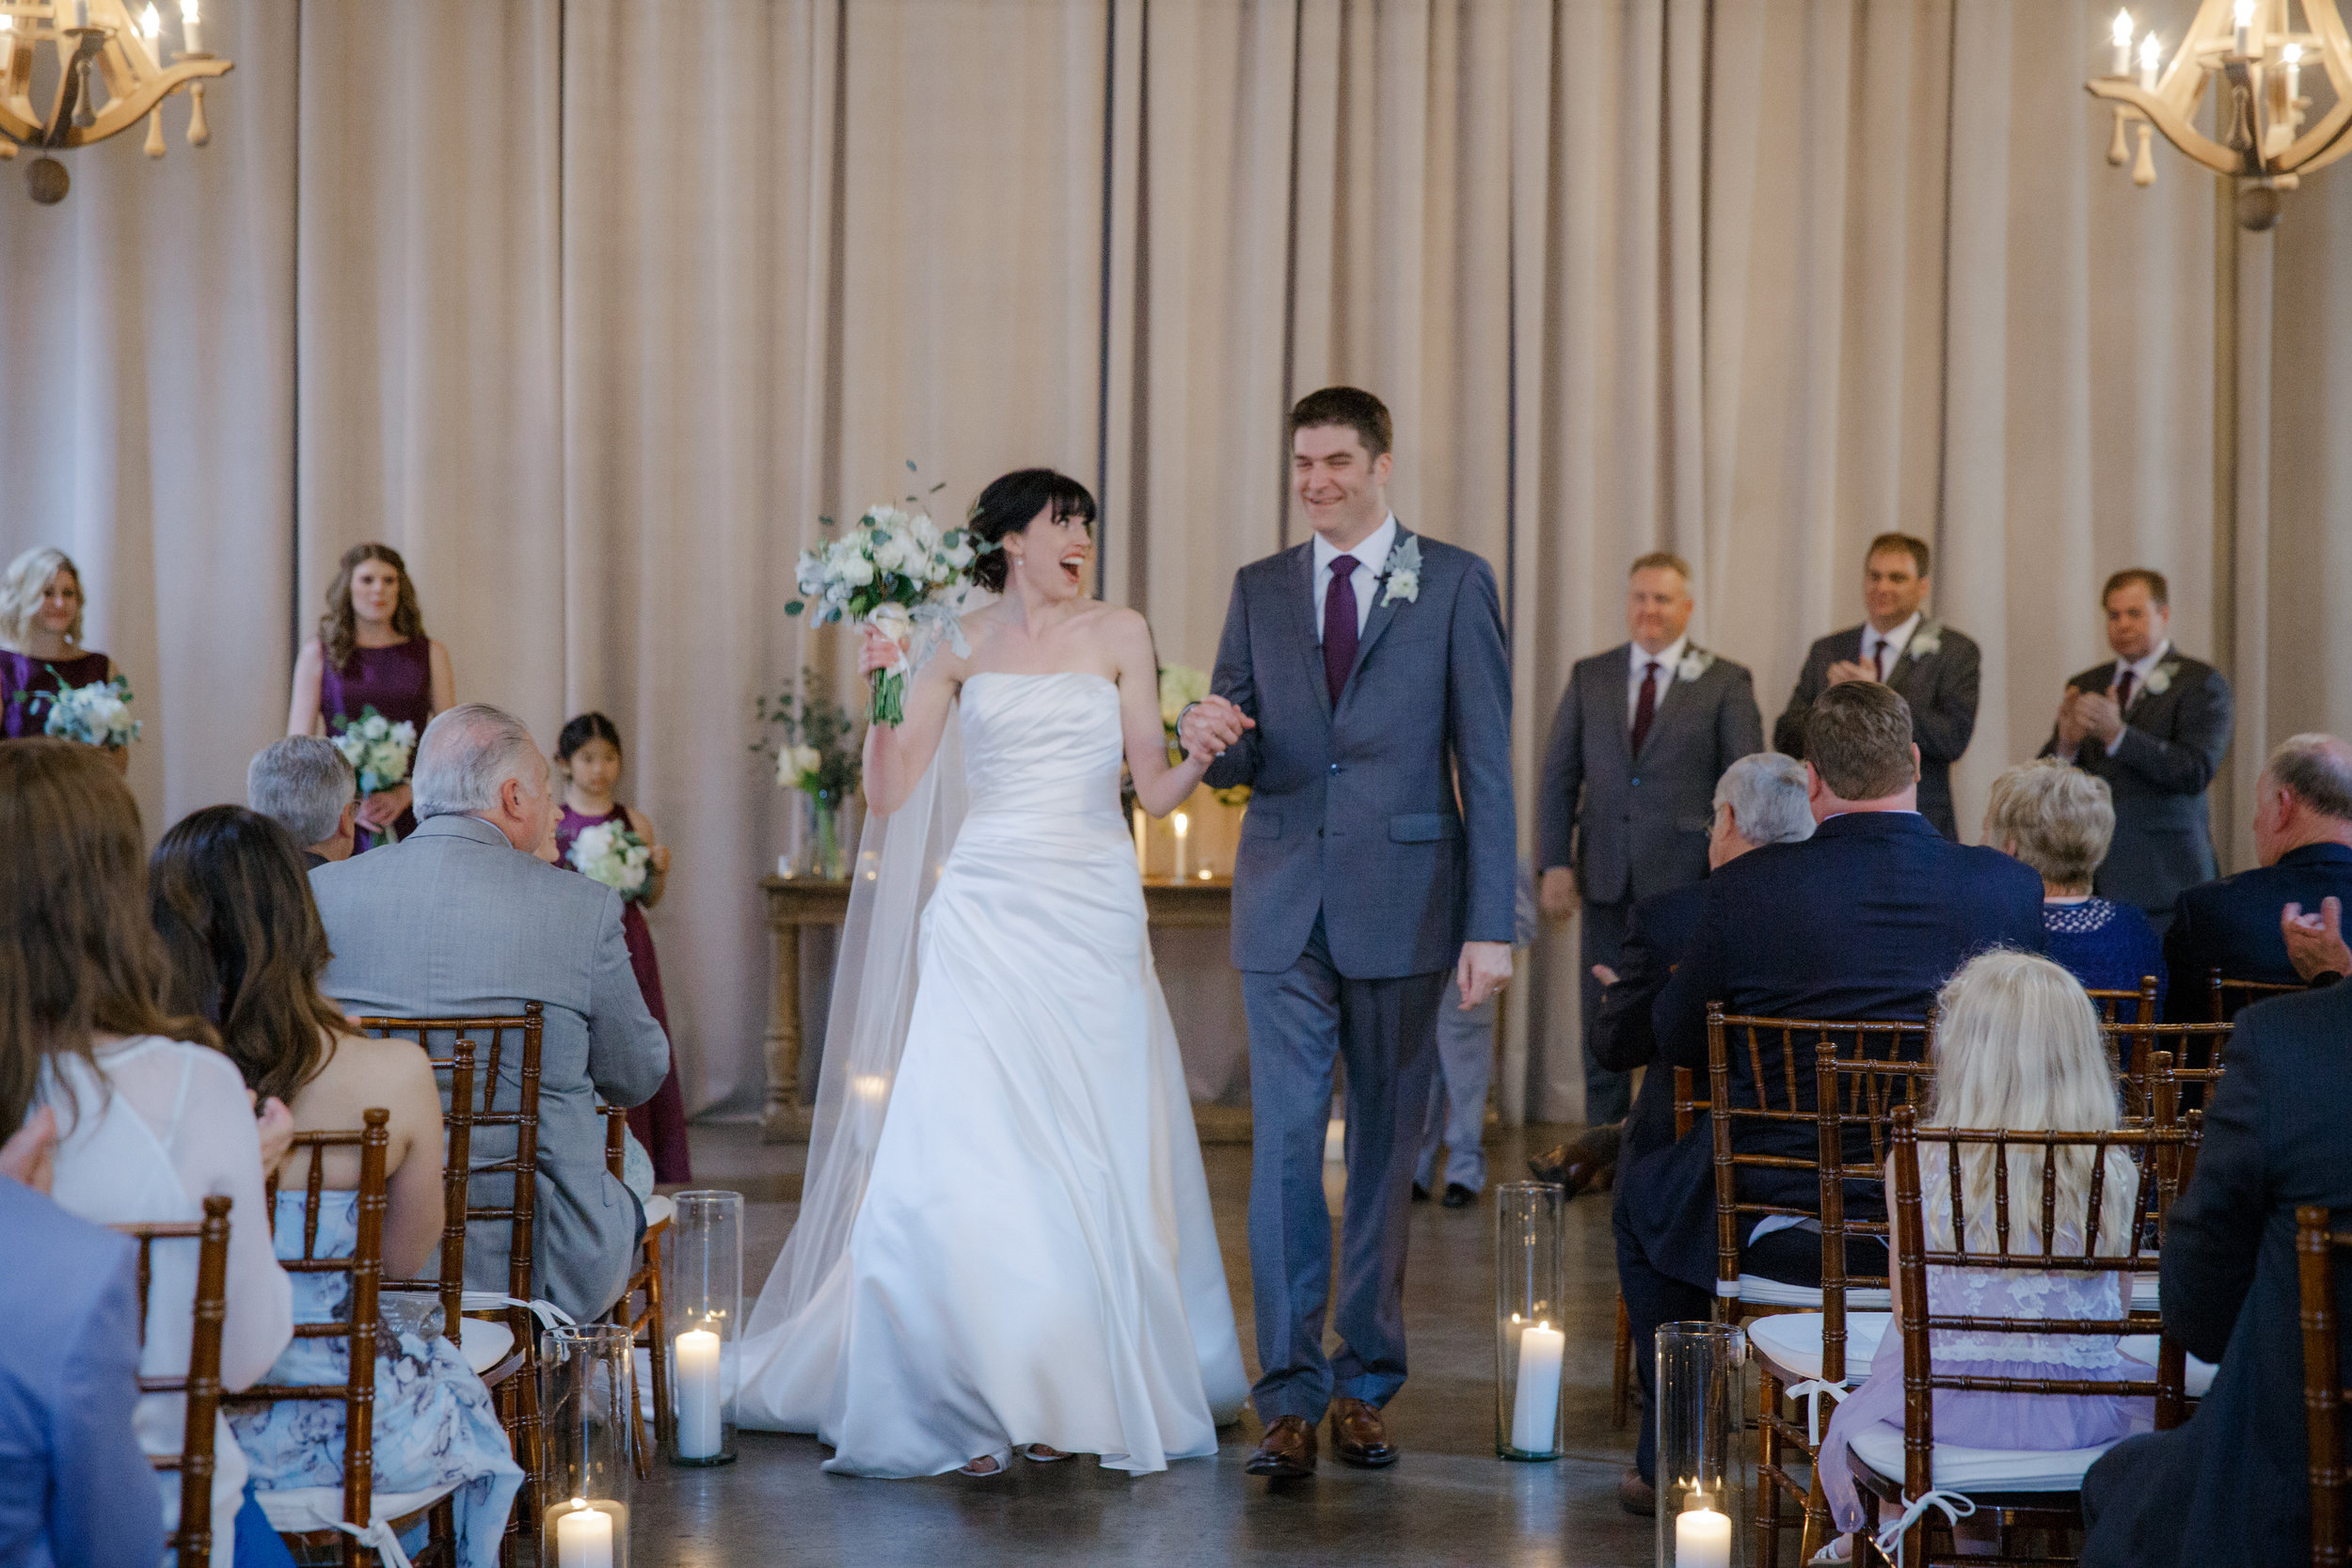 Bridalbliss.com | Washington Wedding| Seattle Event Planning and Design | Yvonne Wang Photography